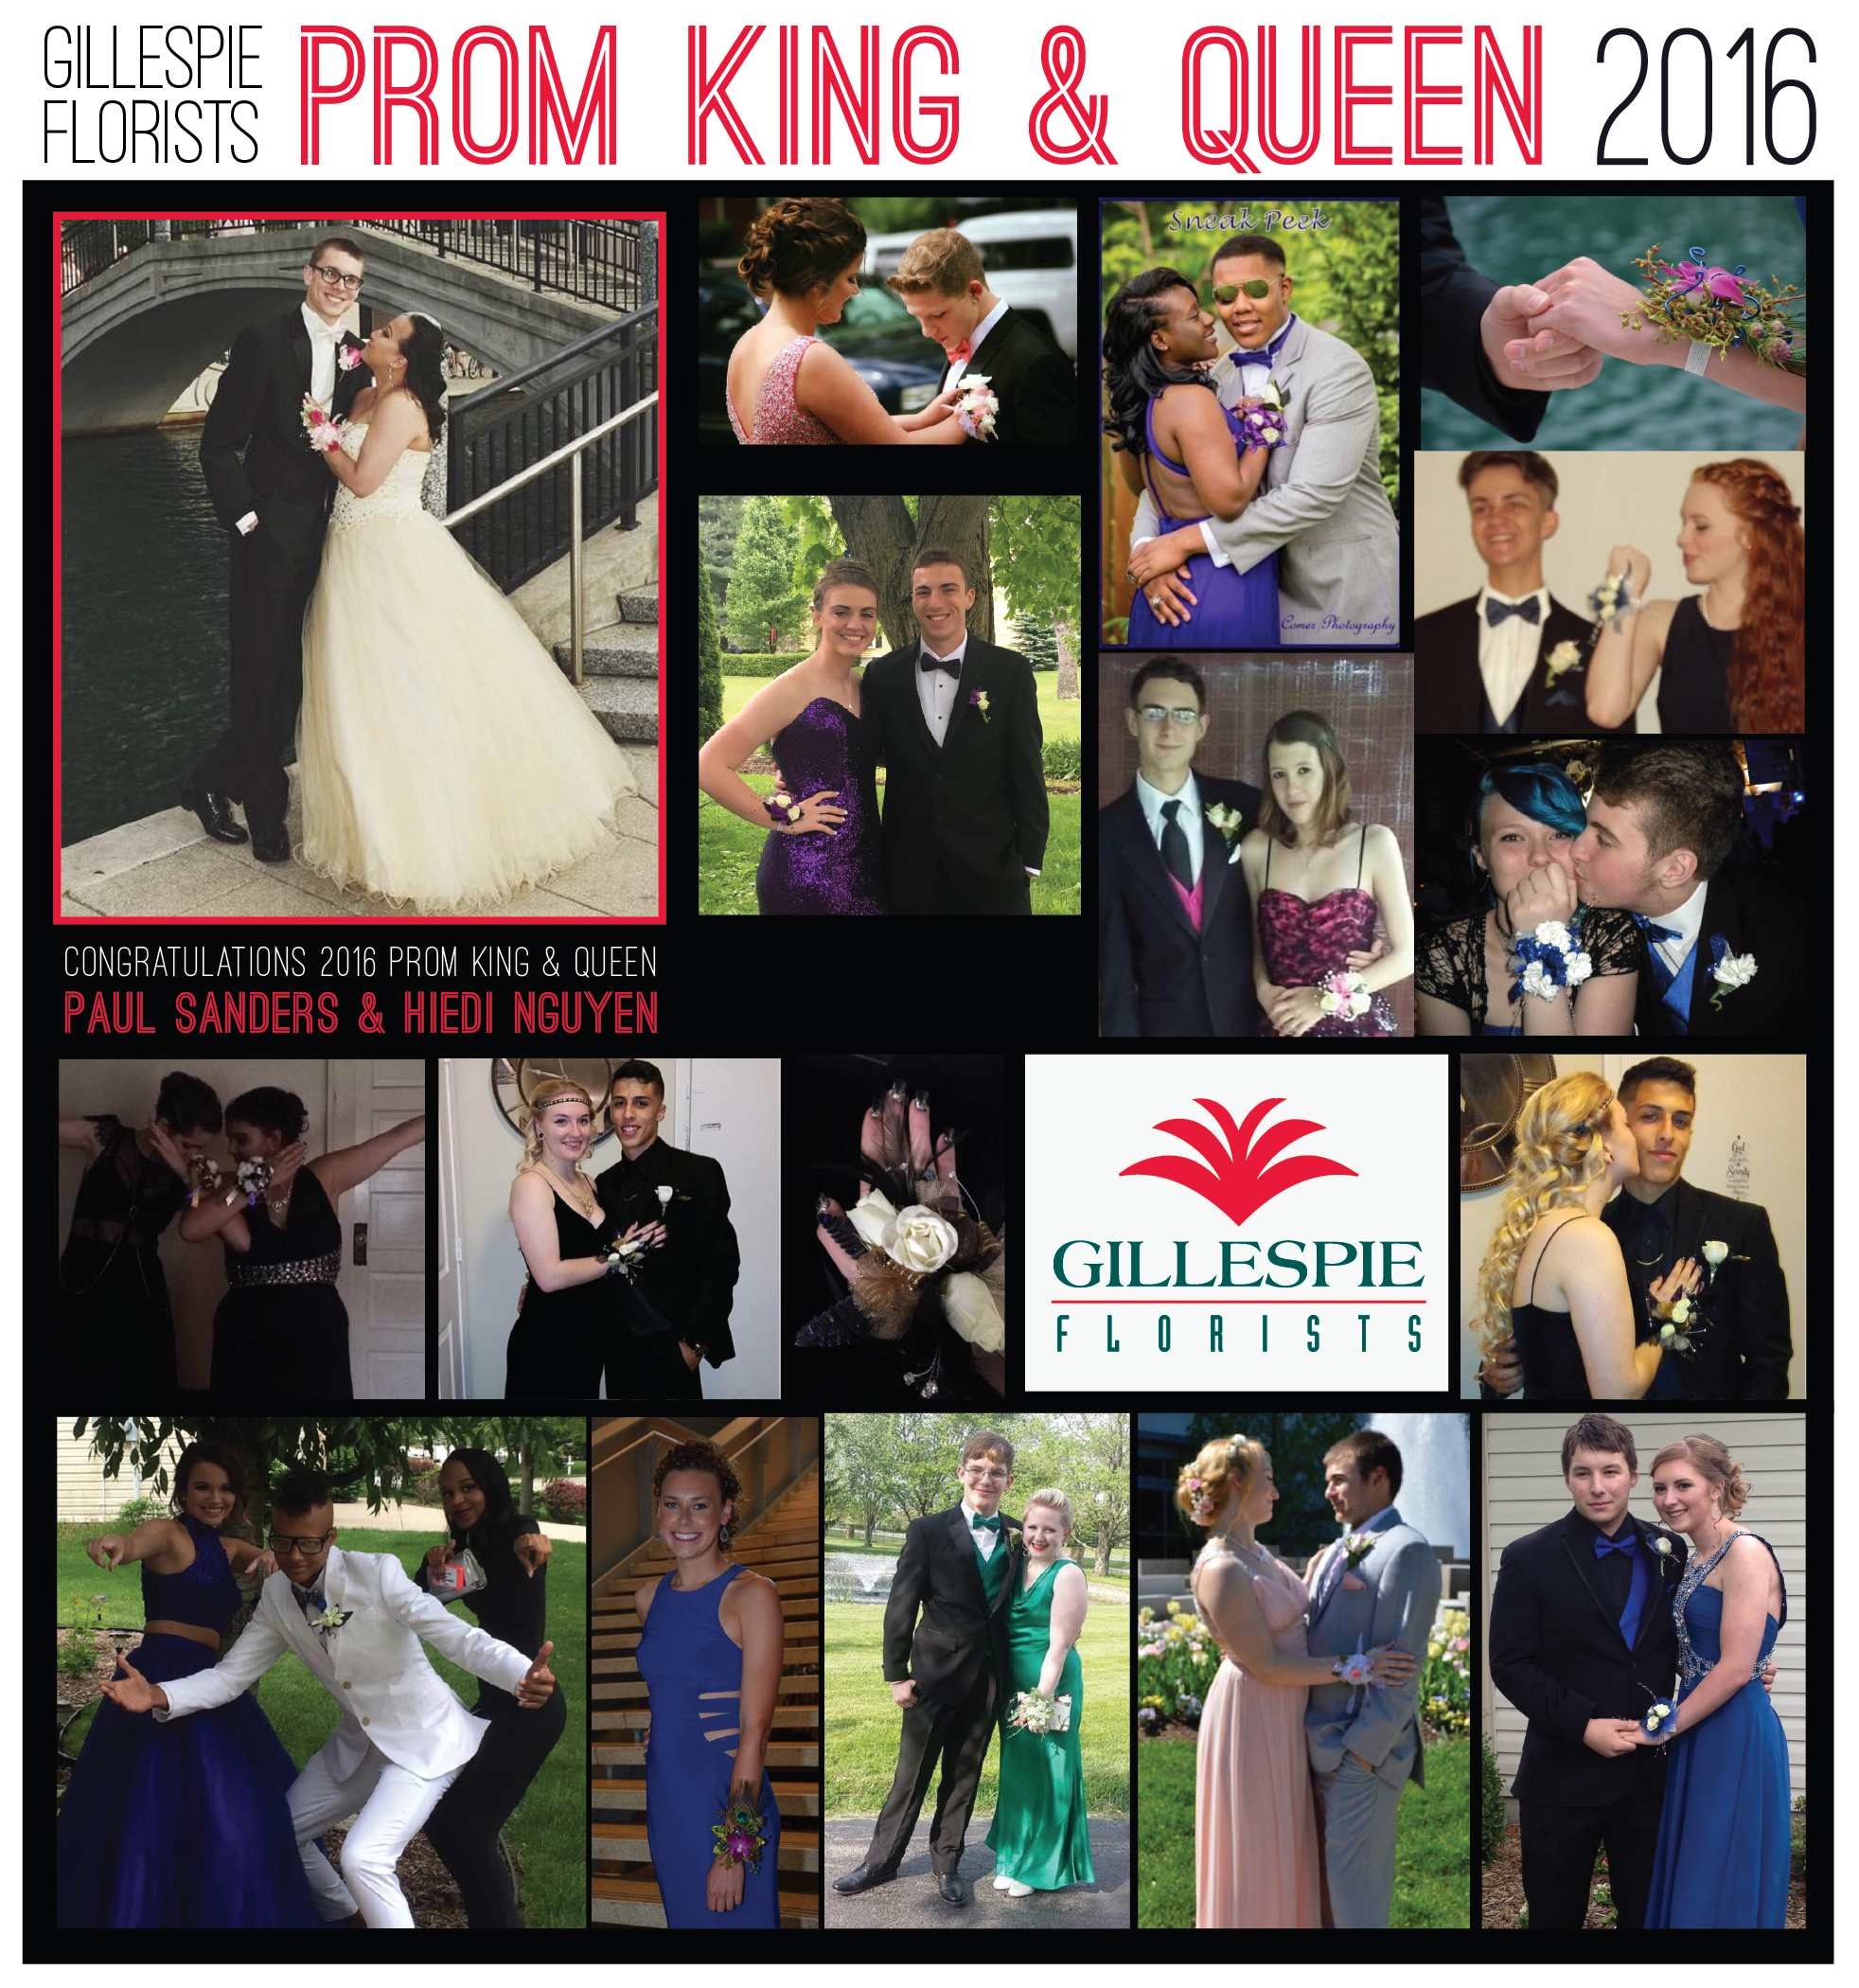 Prom contest winners 2016 gillespie florists #gfprom2016